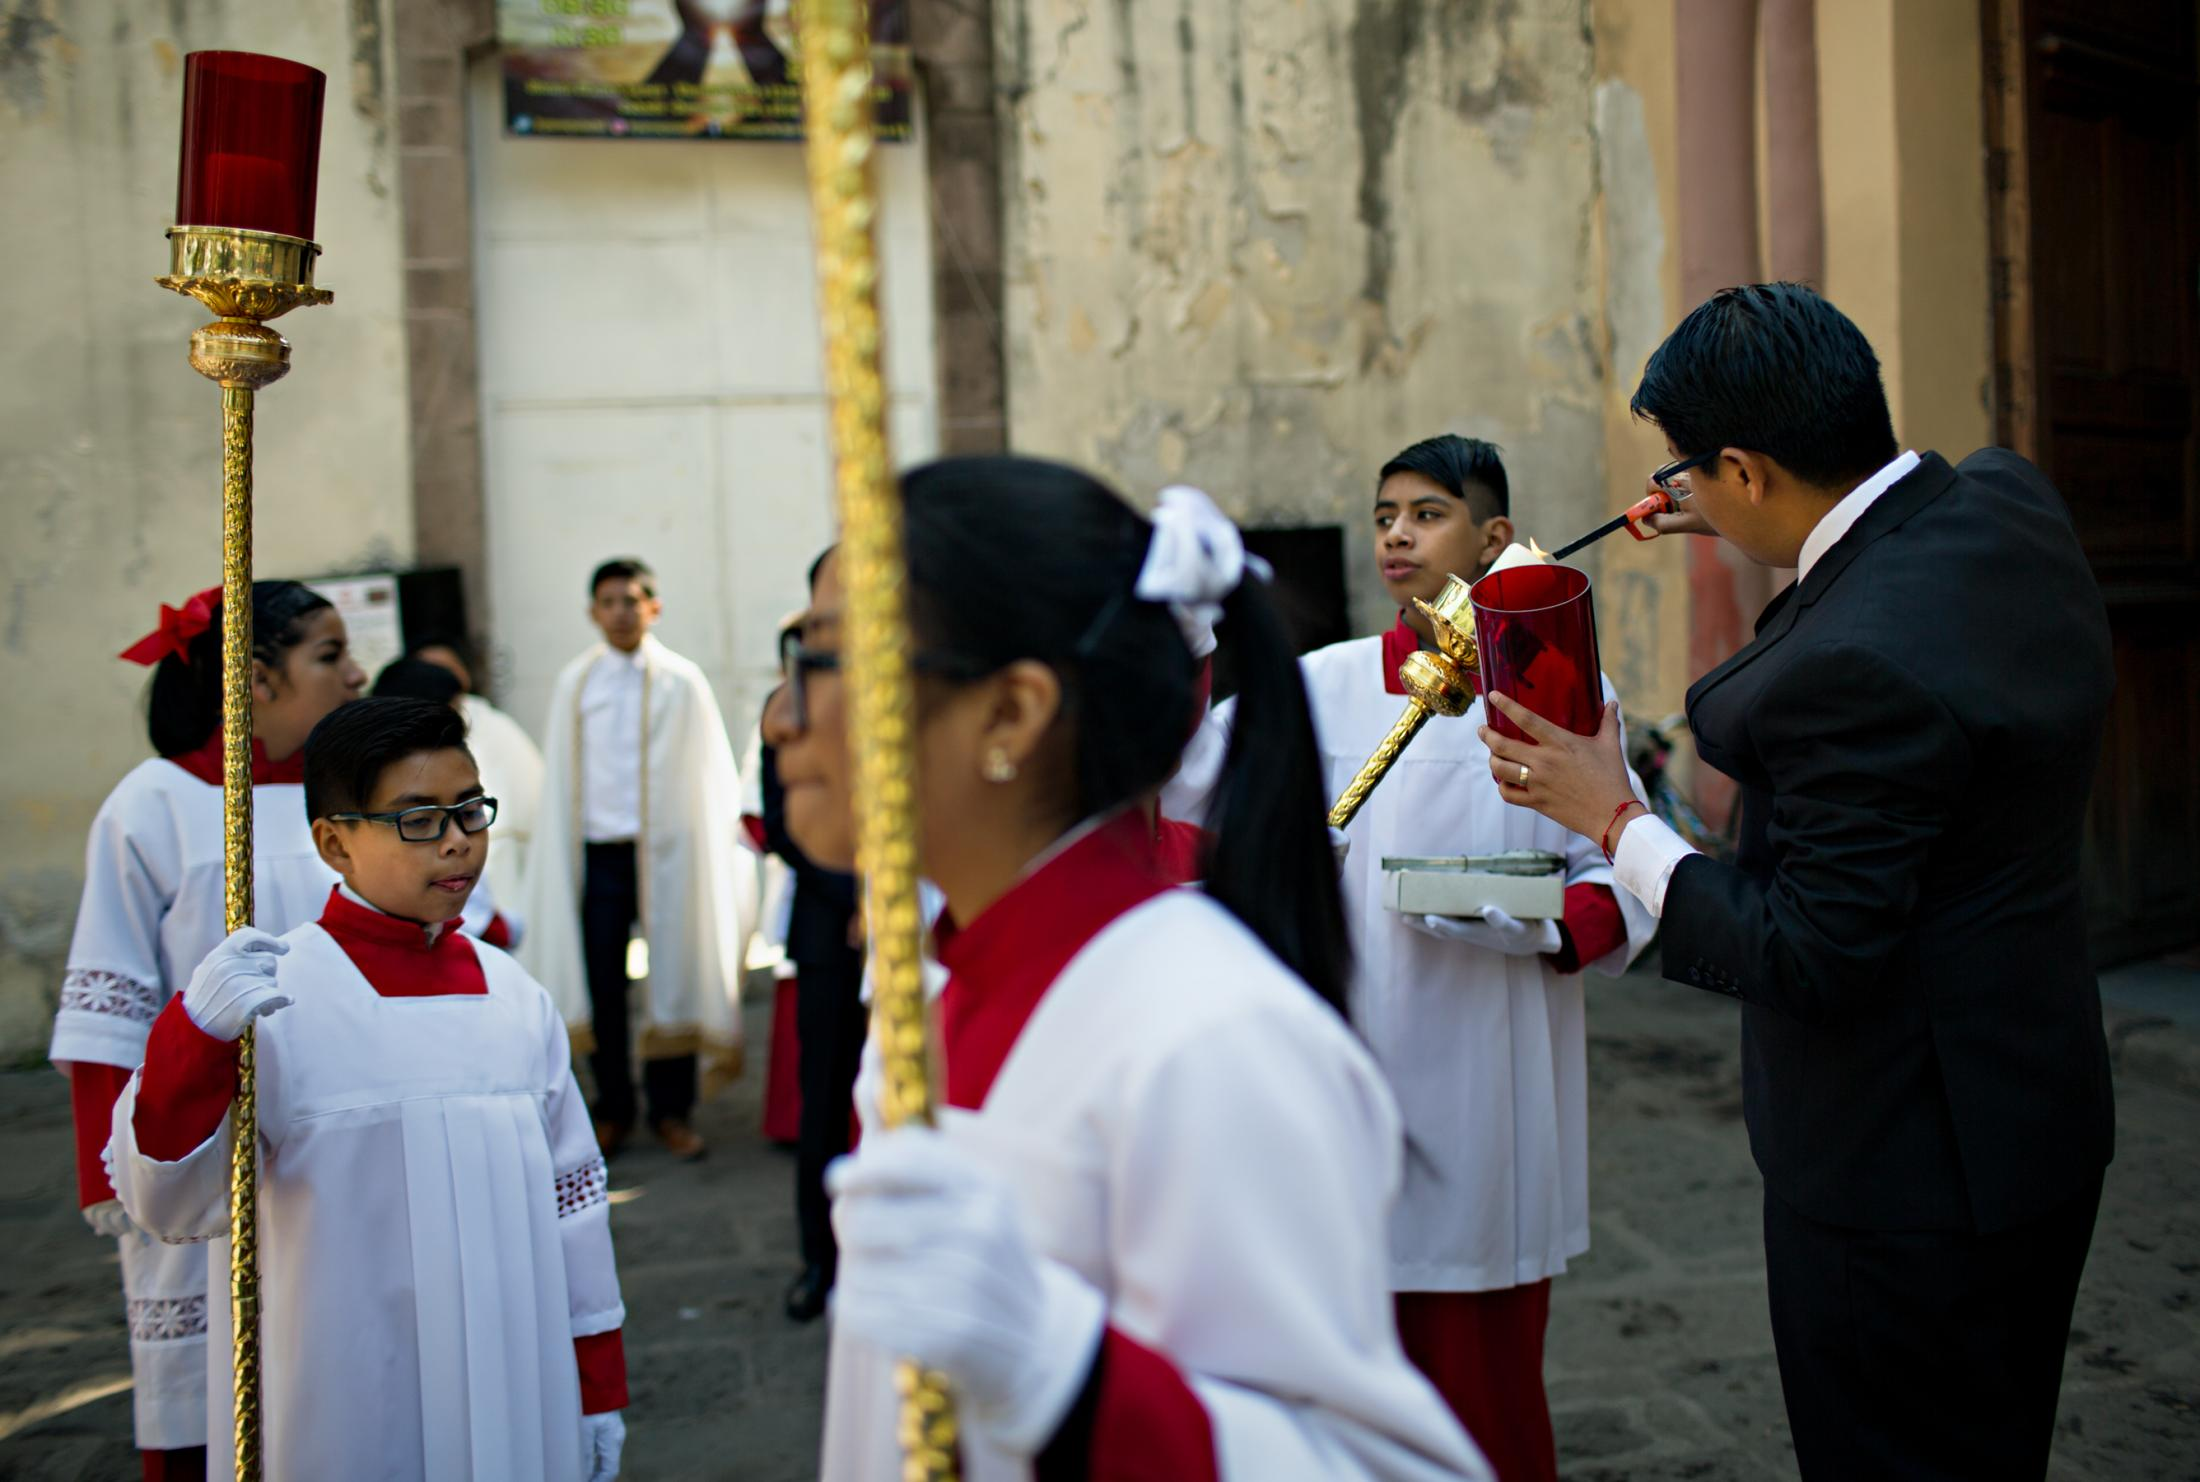 At the cathedral, alter boys and girls wait for the arrival of the Cardinal and the Niñopa.